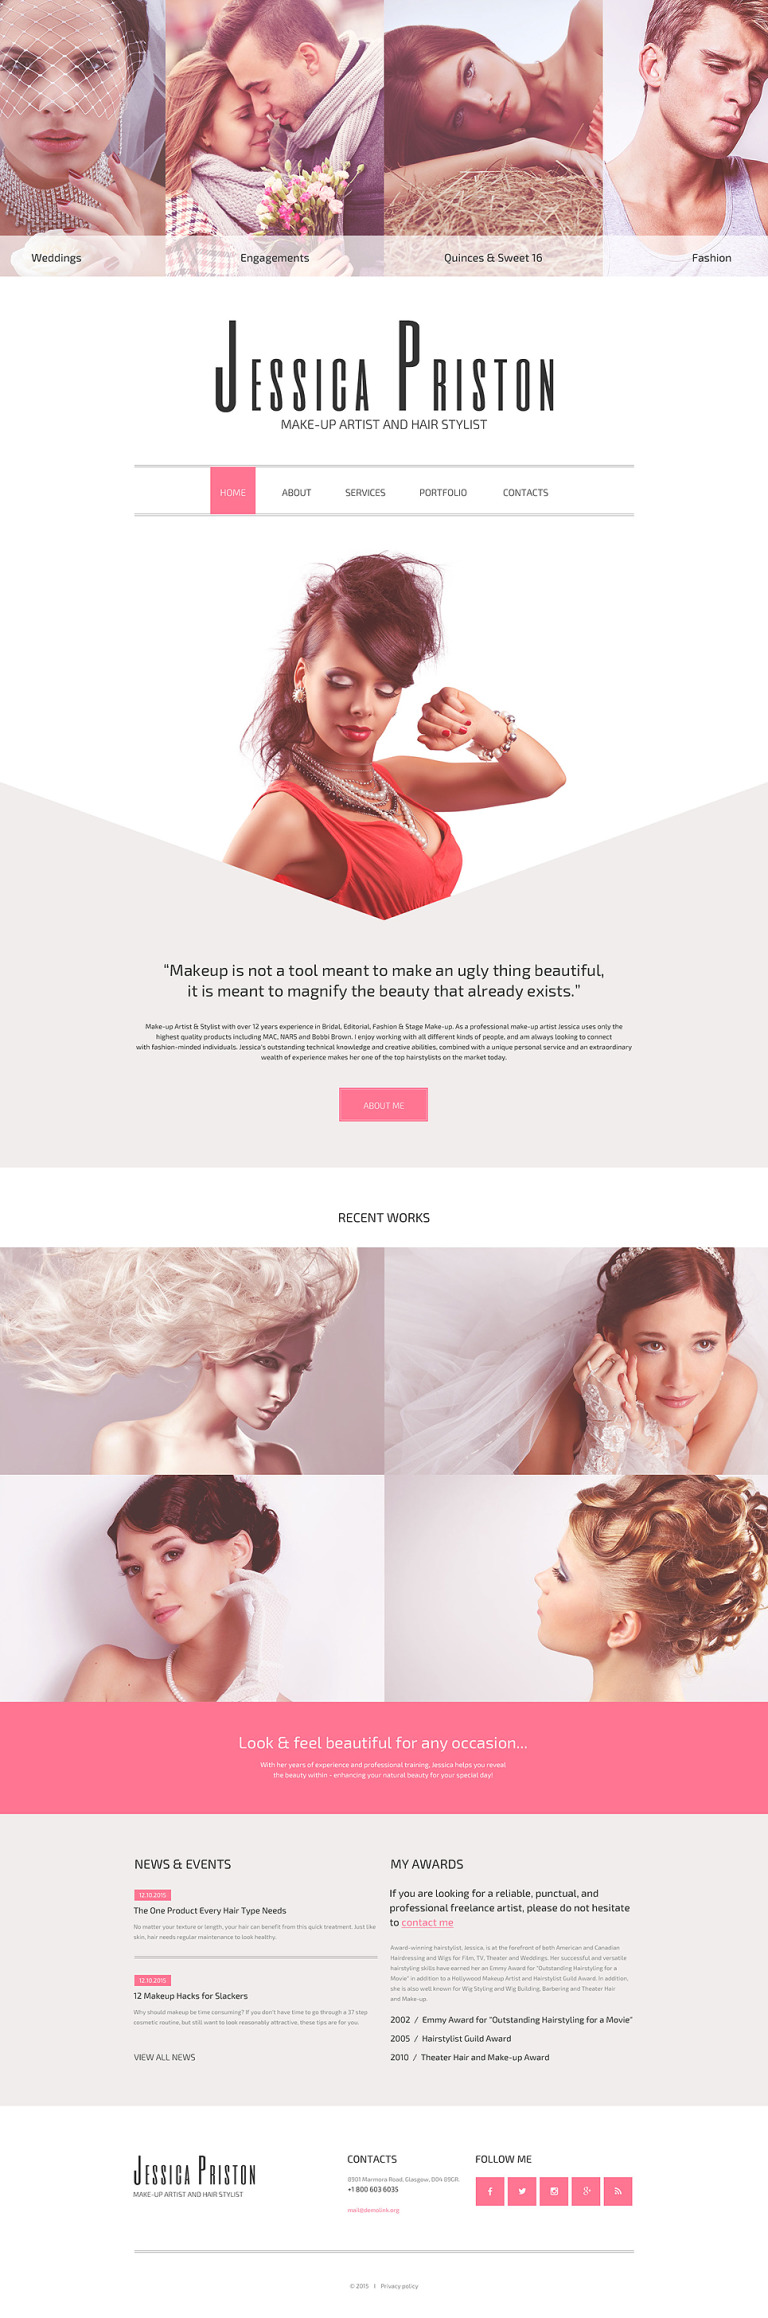 Make-up Artist Website Template New Screenshots BIG